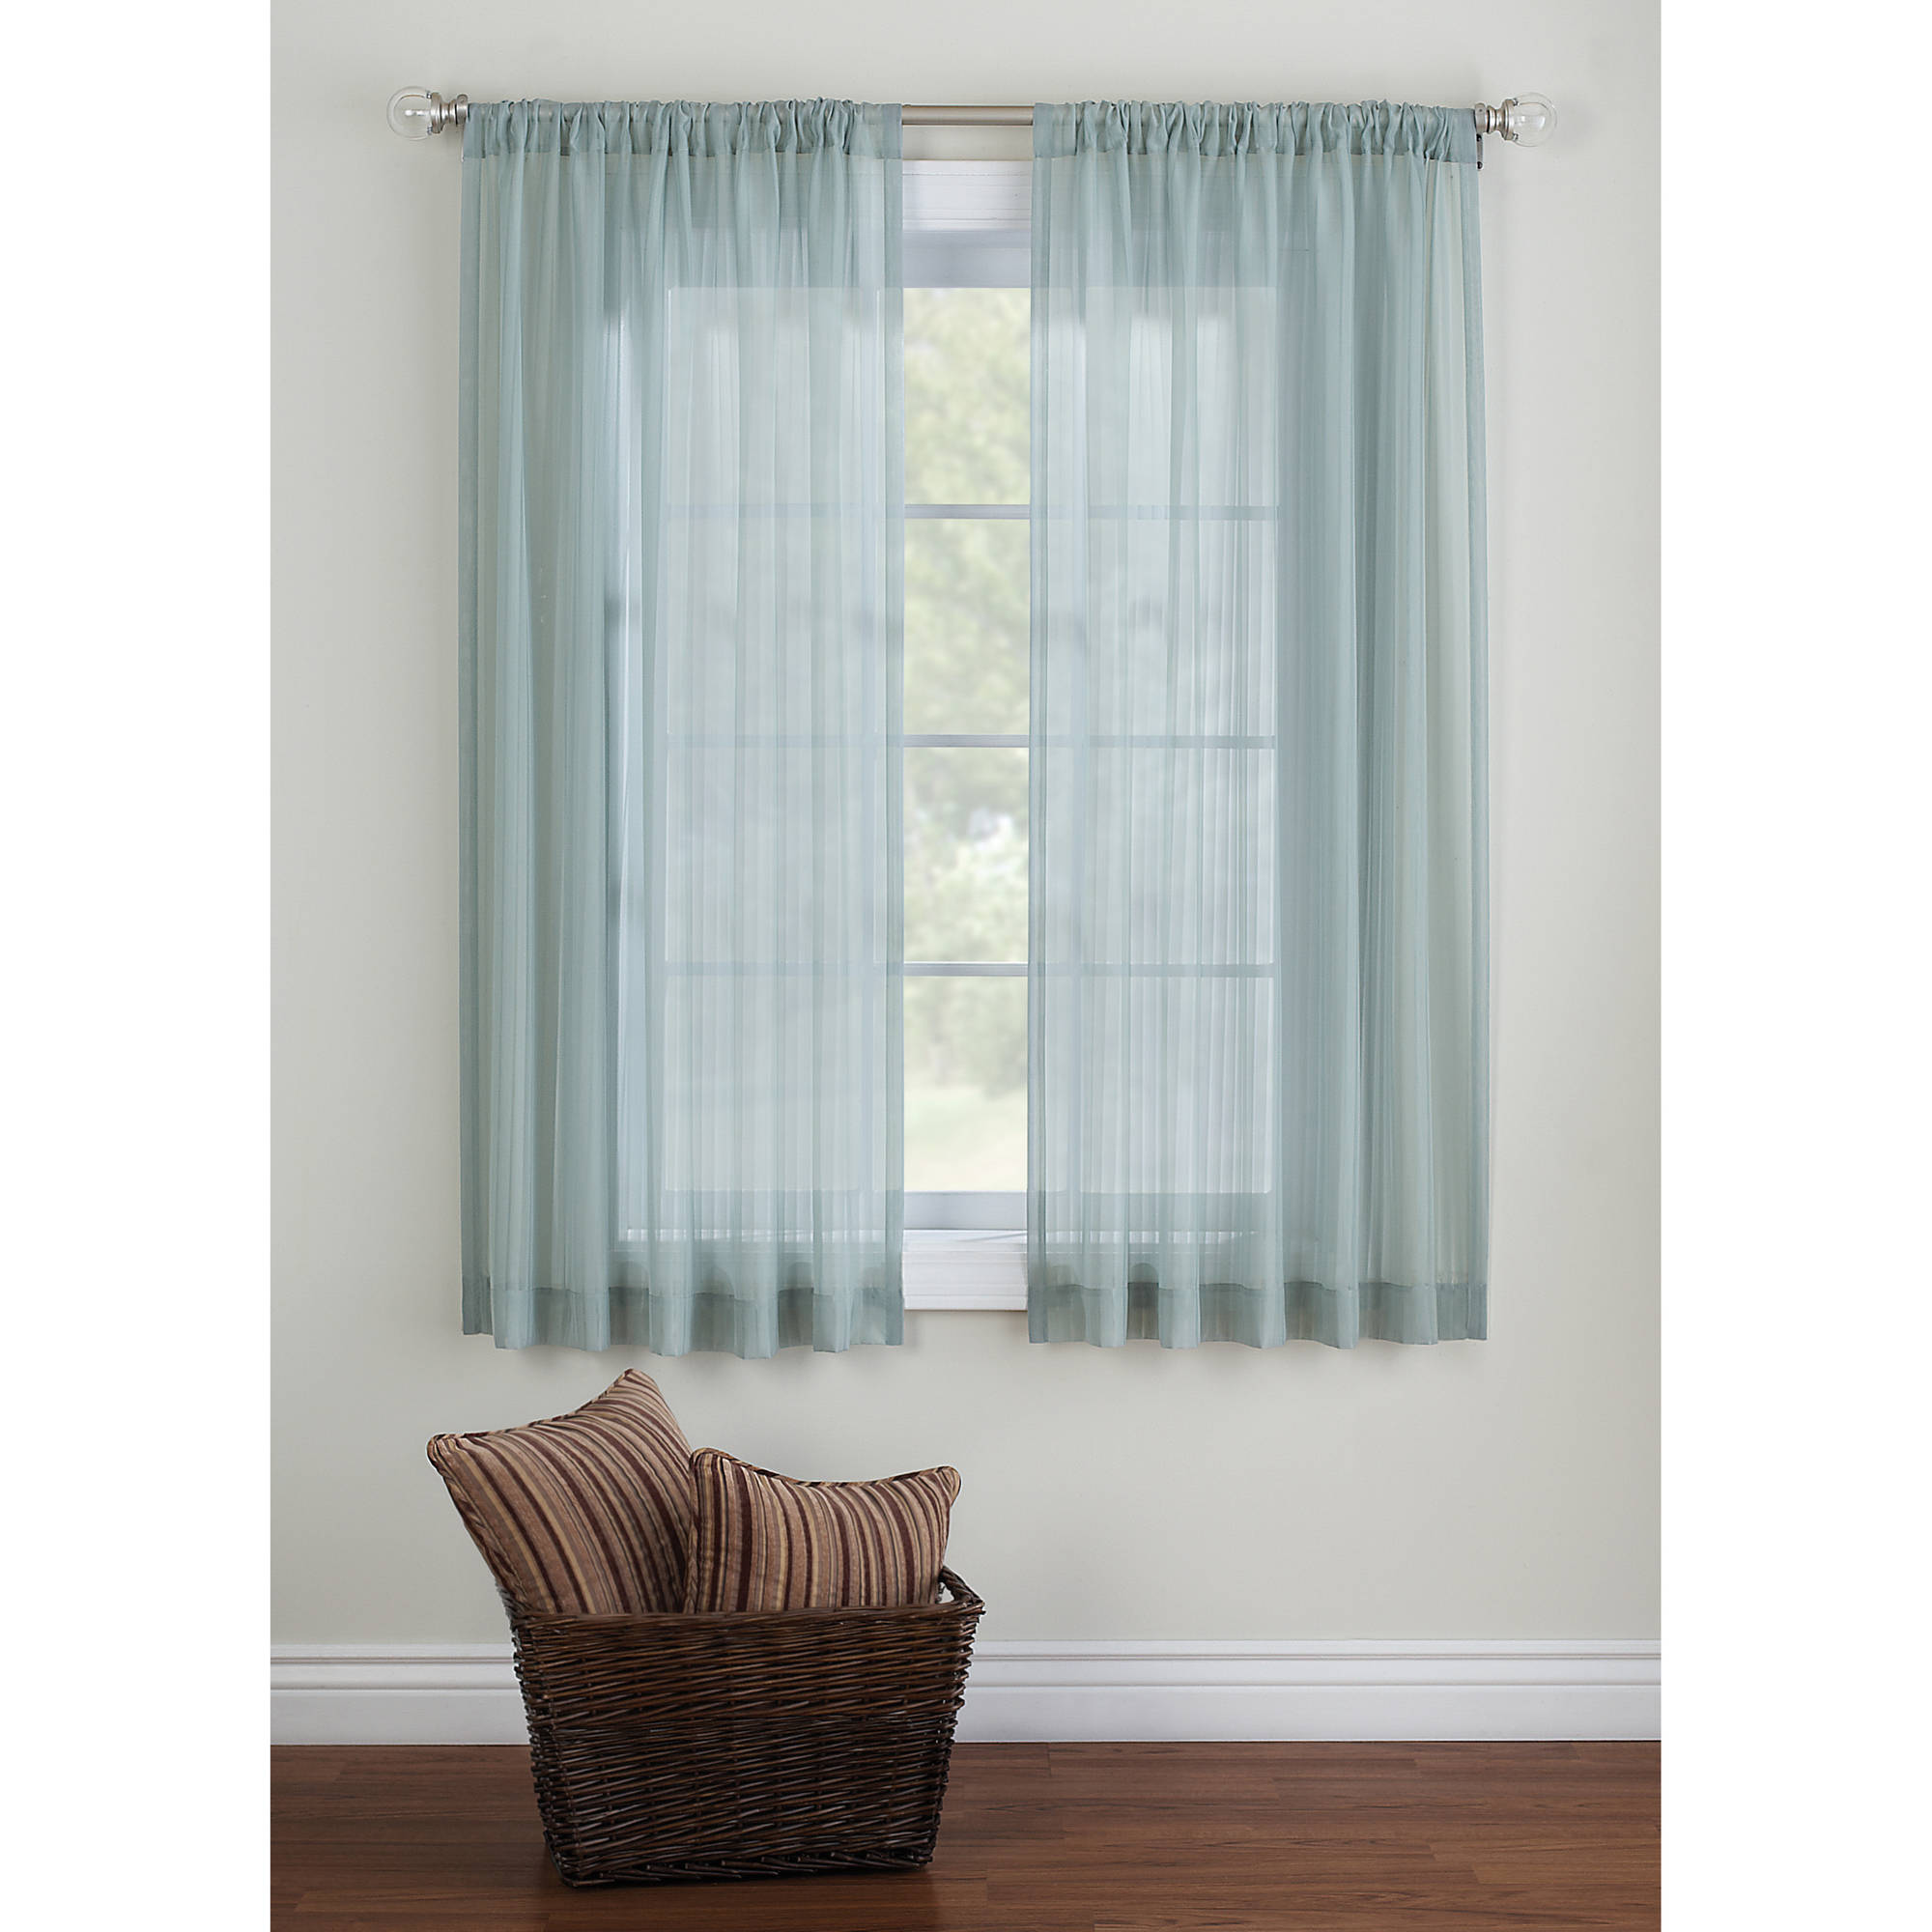 basement excellent curtain walmart grommet curtains size inch valances valance of insulated tropical amazing drapes darkening cute window full linen